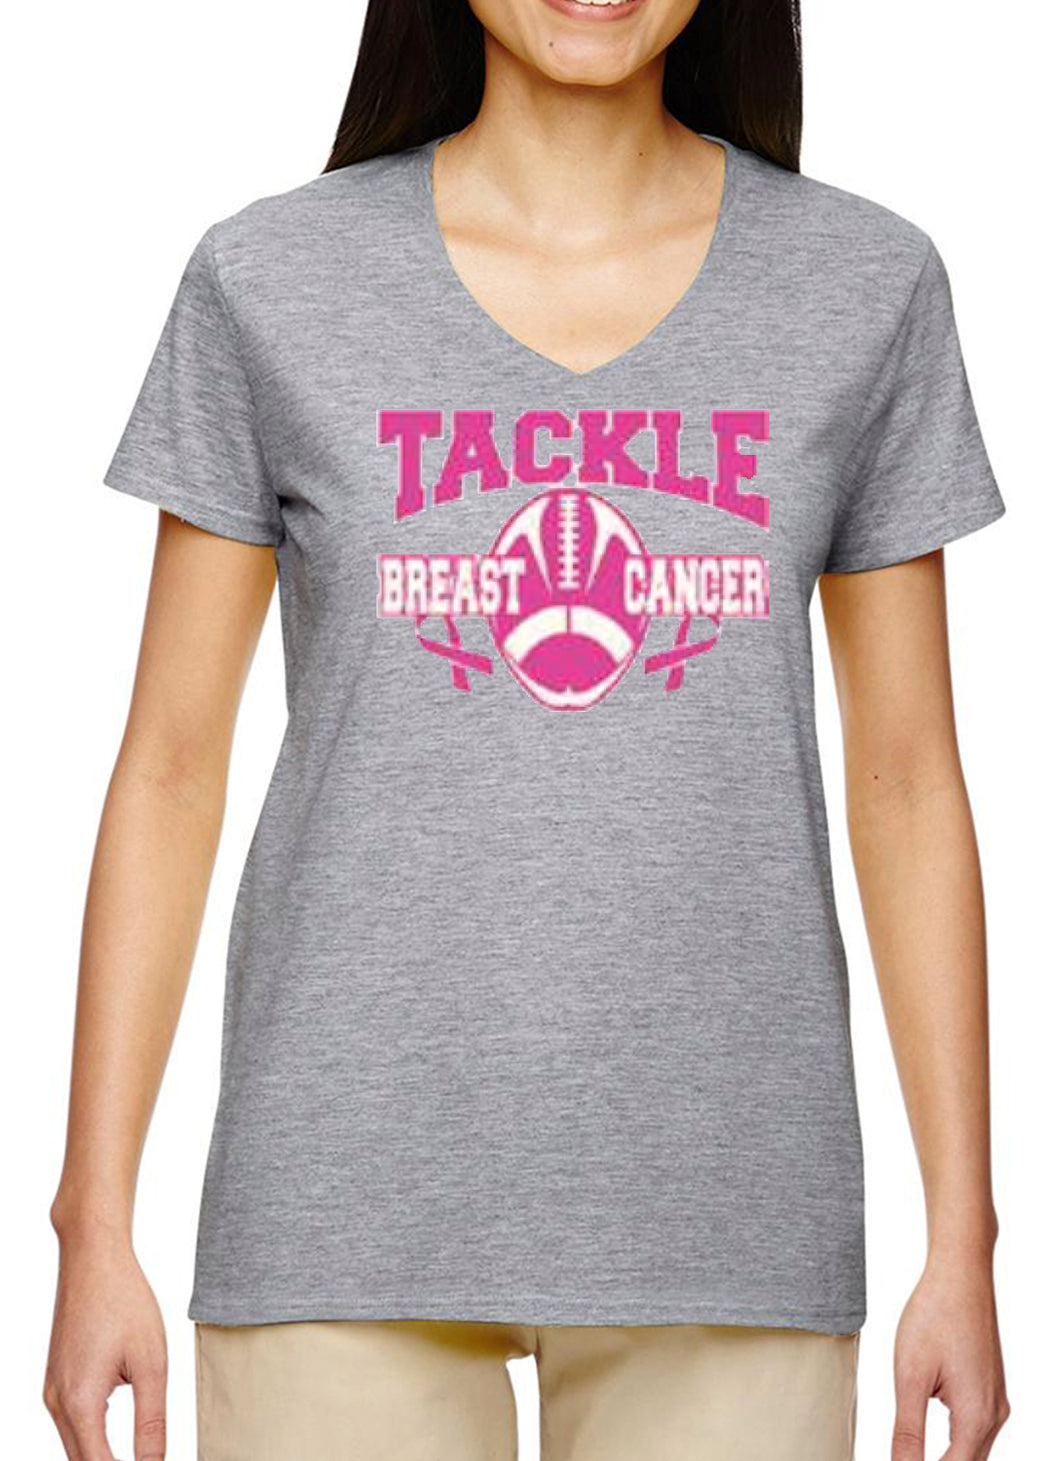 Women's V-Neck Tackle BC